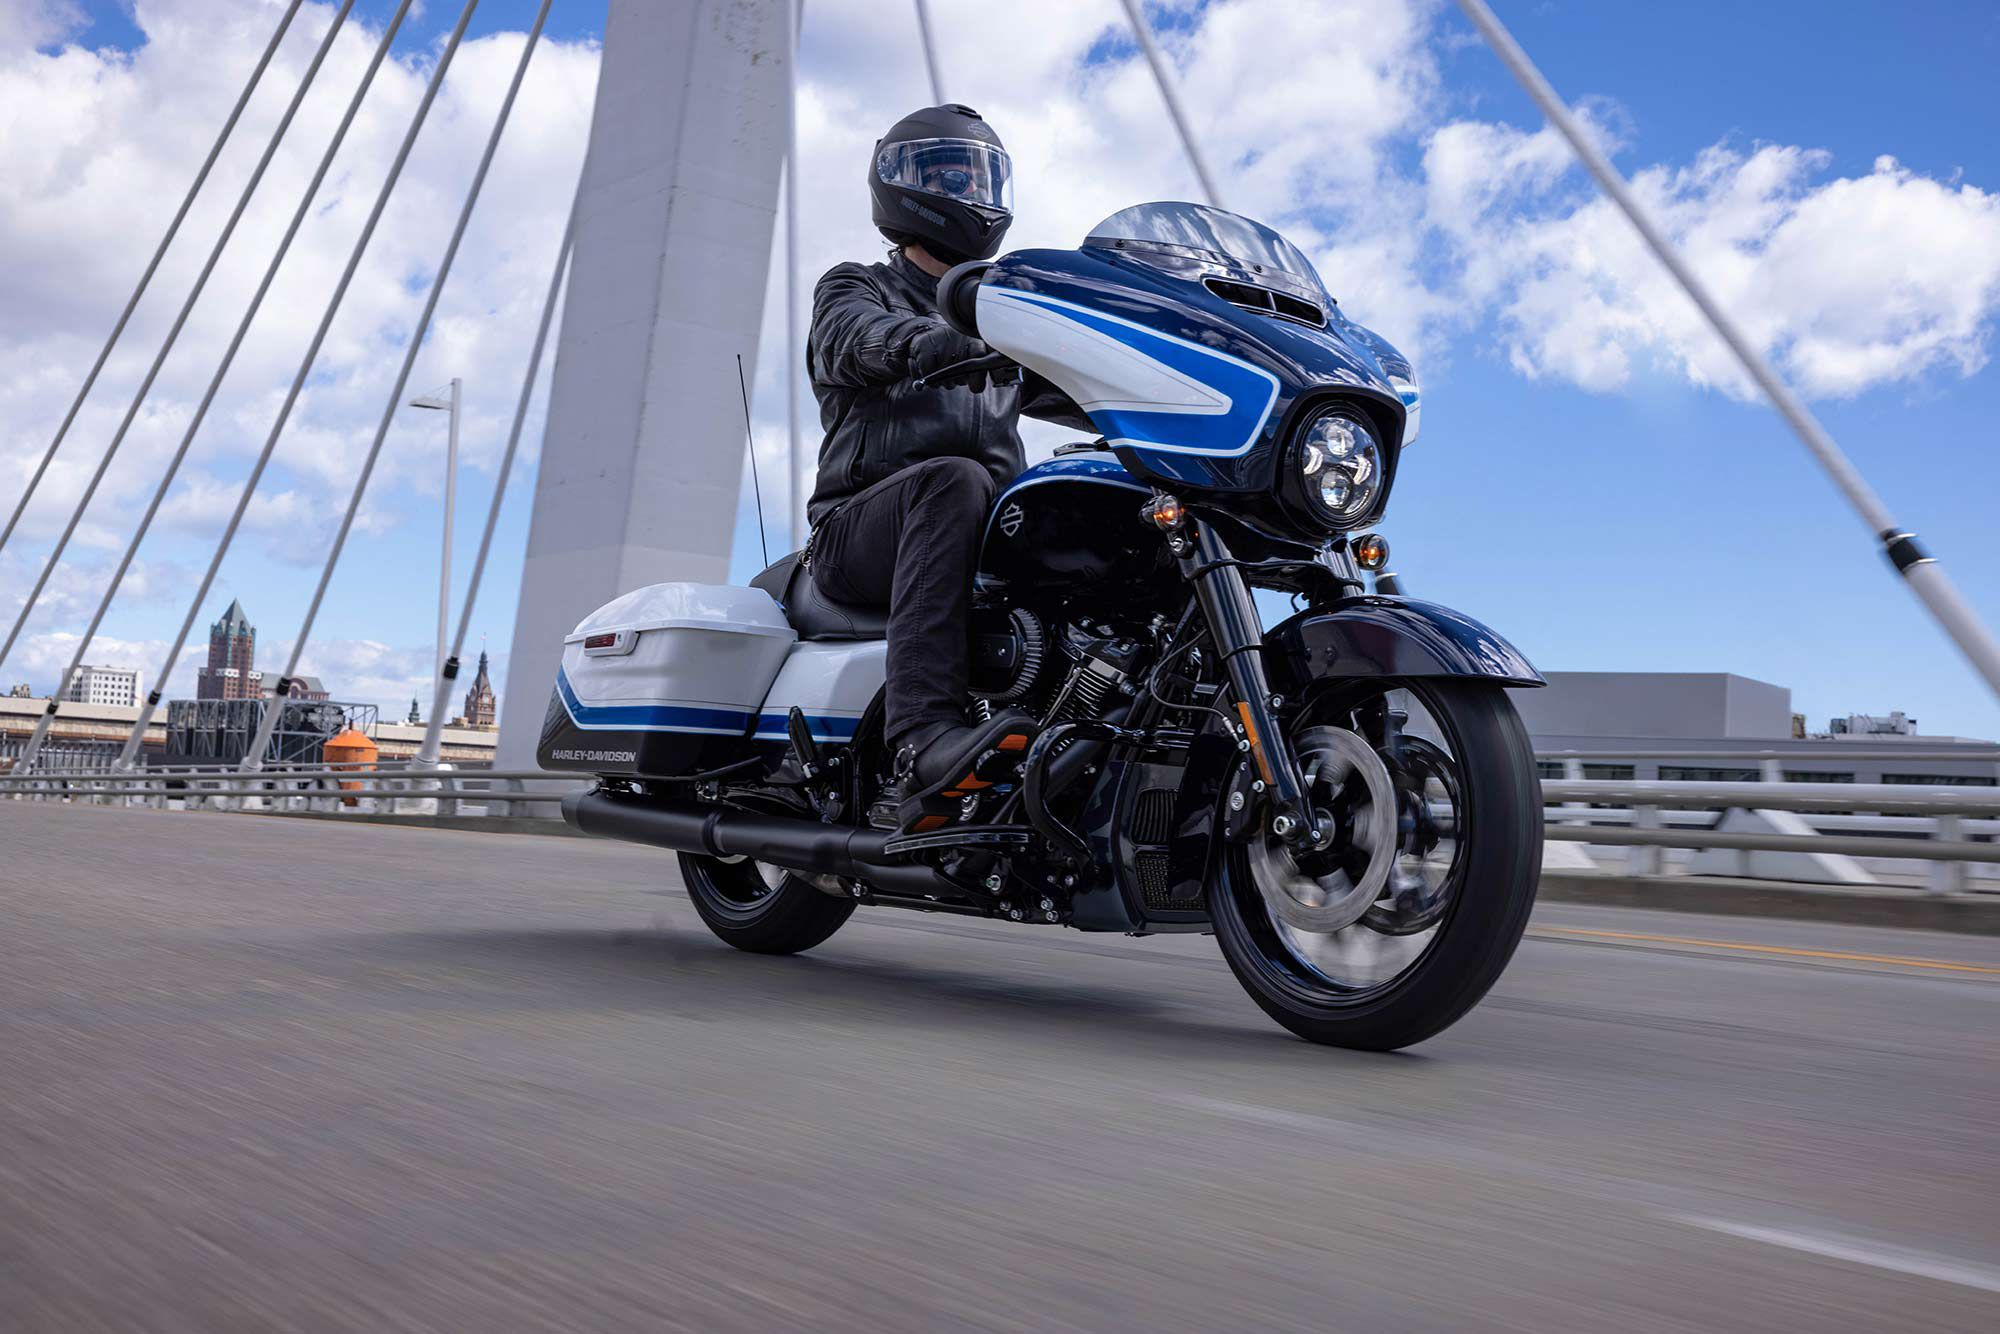 Limited to only 500 serialized units worldwide, contact your local dealer to check on the new 2021 Arctic Blast Street Glide Special's availability.